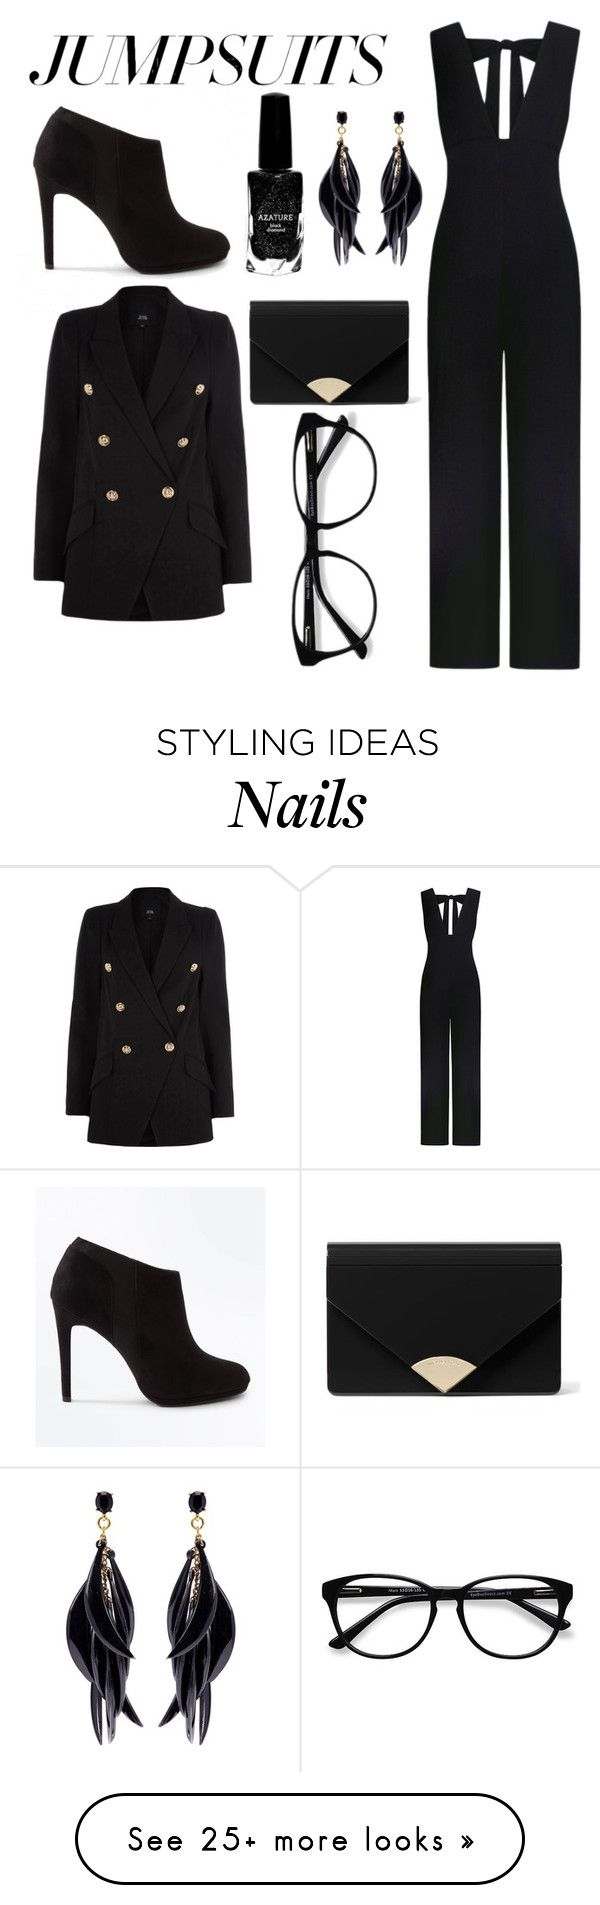 """Black is back"" by rsuperstar101 on Polyvore featuring Ganni, New Look, Azature, MICHAEL Michael Kors, Oscar de la Renta, EyeBuyDirect.com and jumpsuits"